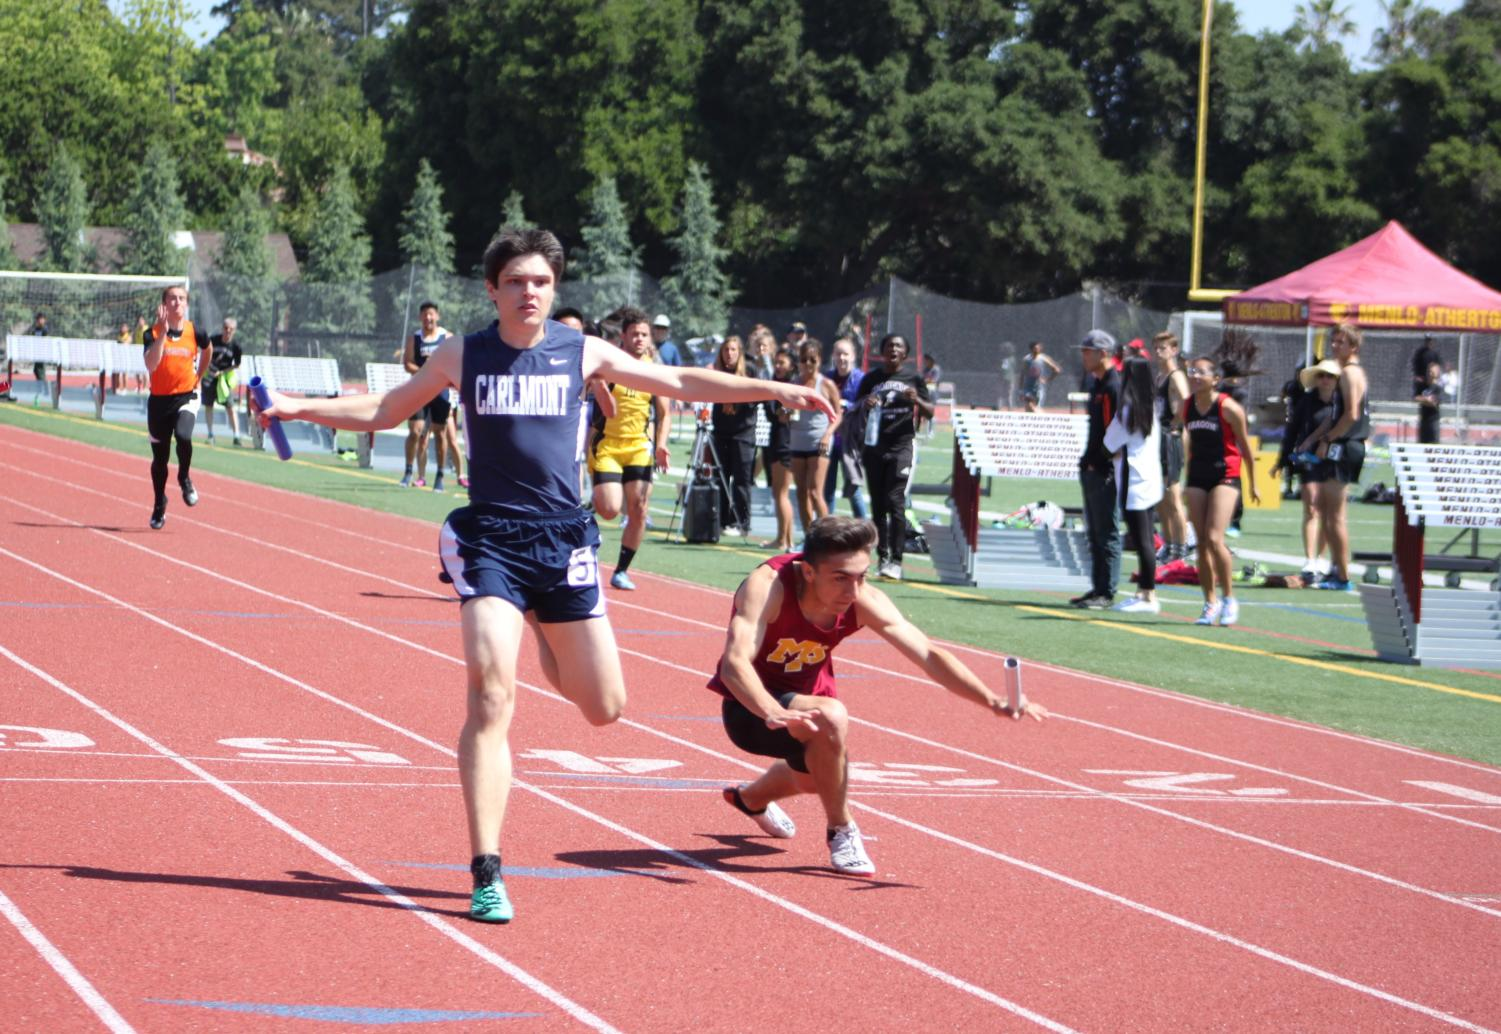 Carlmont's Jack Norton, a junior, finished second in the 100-meter sprint, only 0.6 seconds behind Francisco Sanchez from Menlo-Atherton High School.